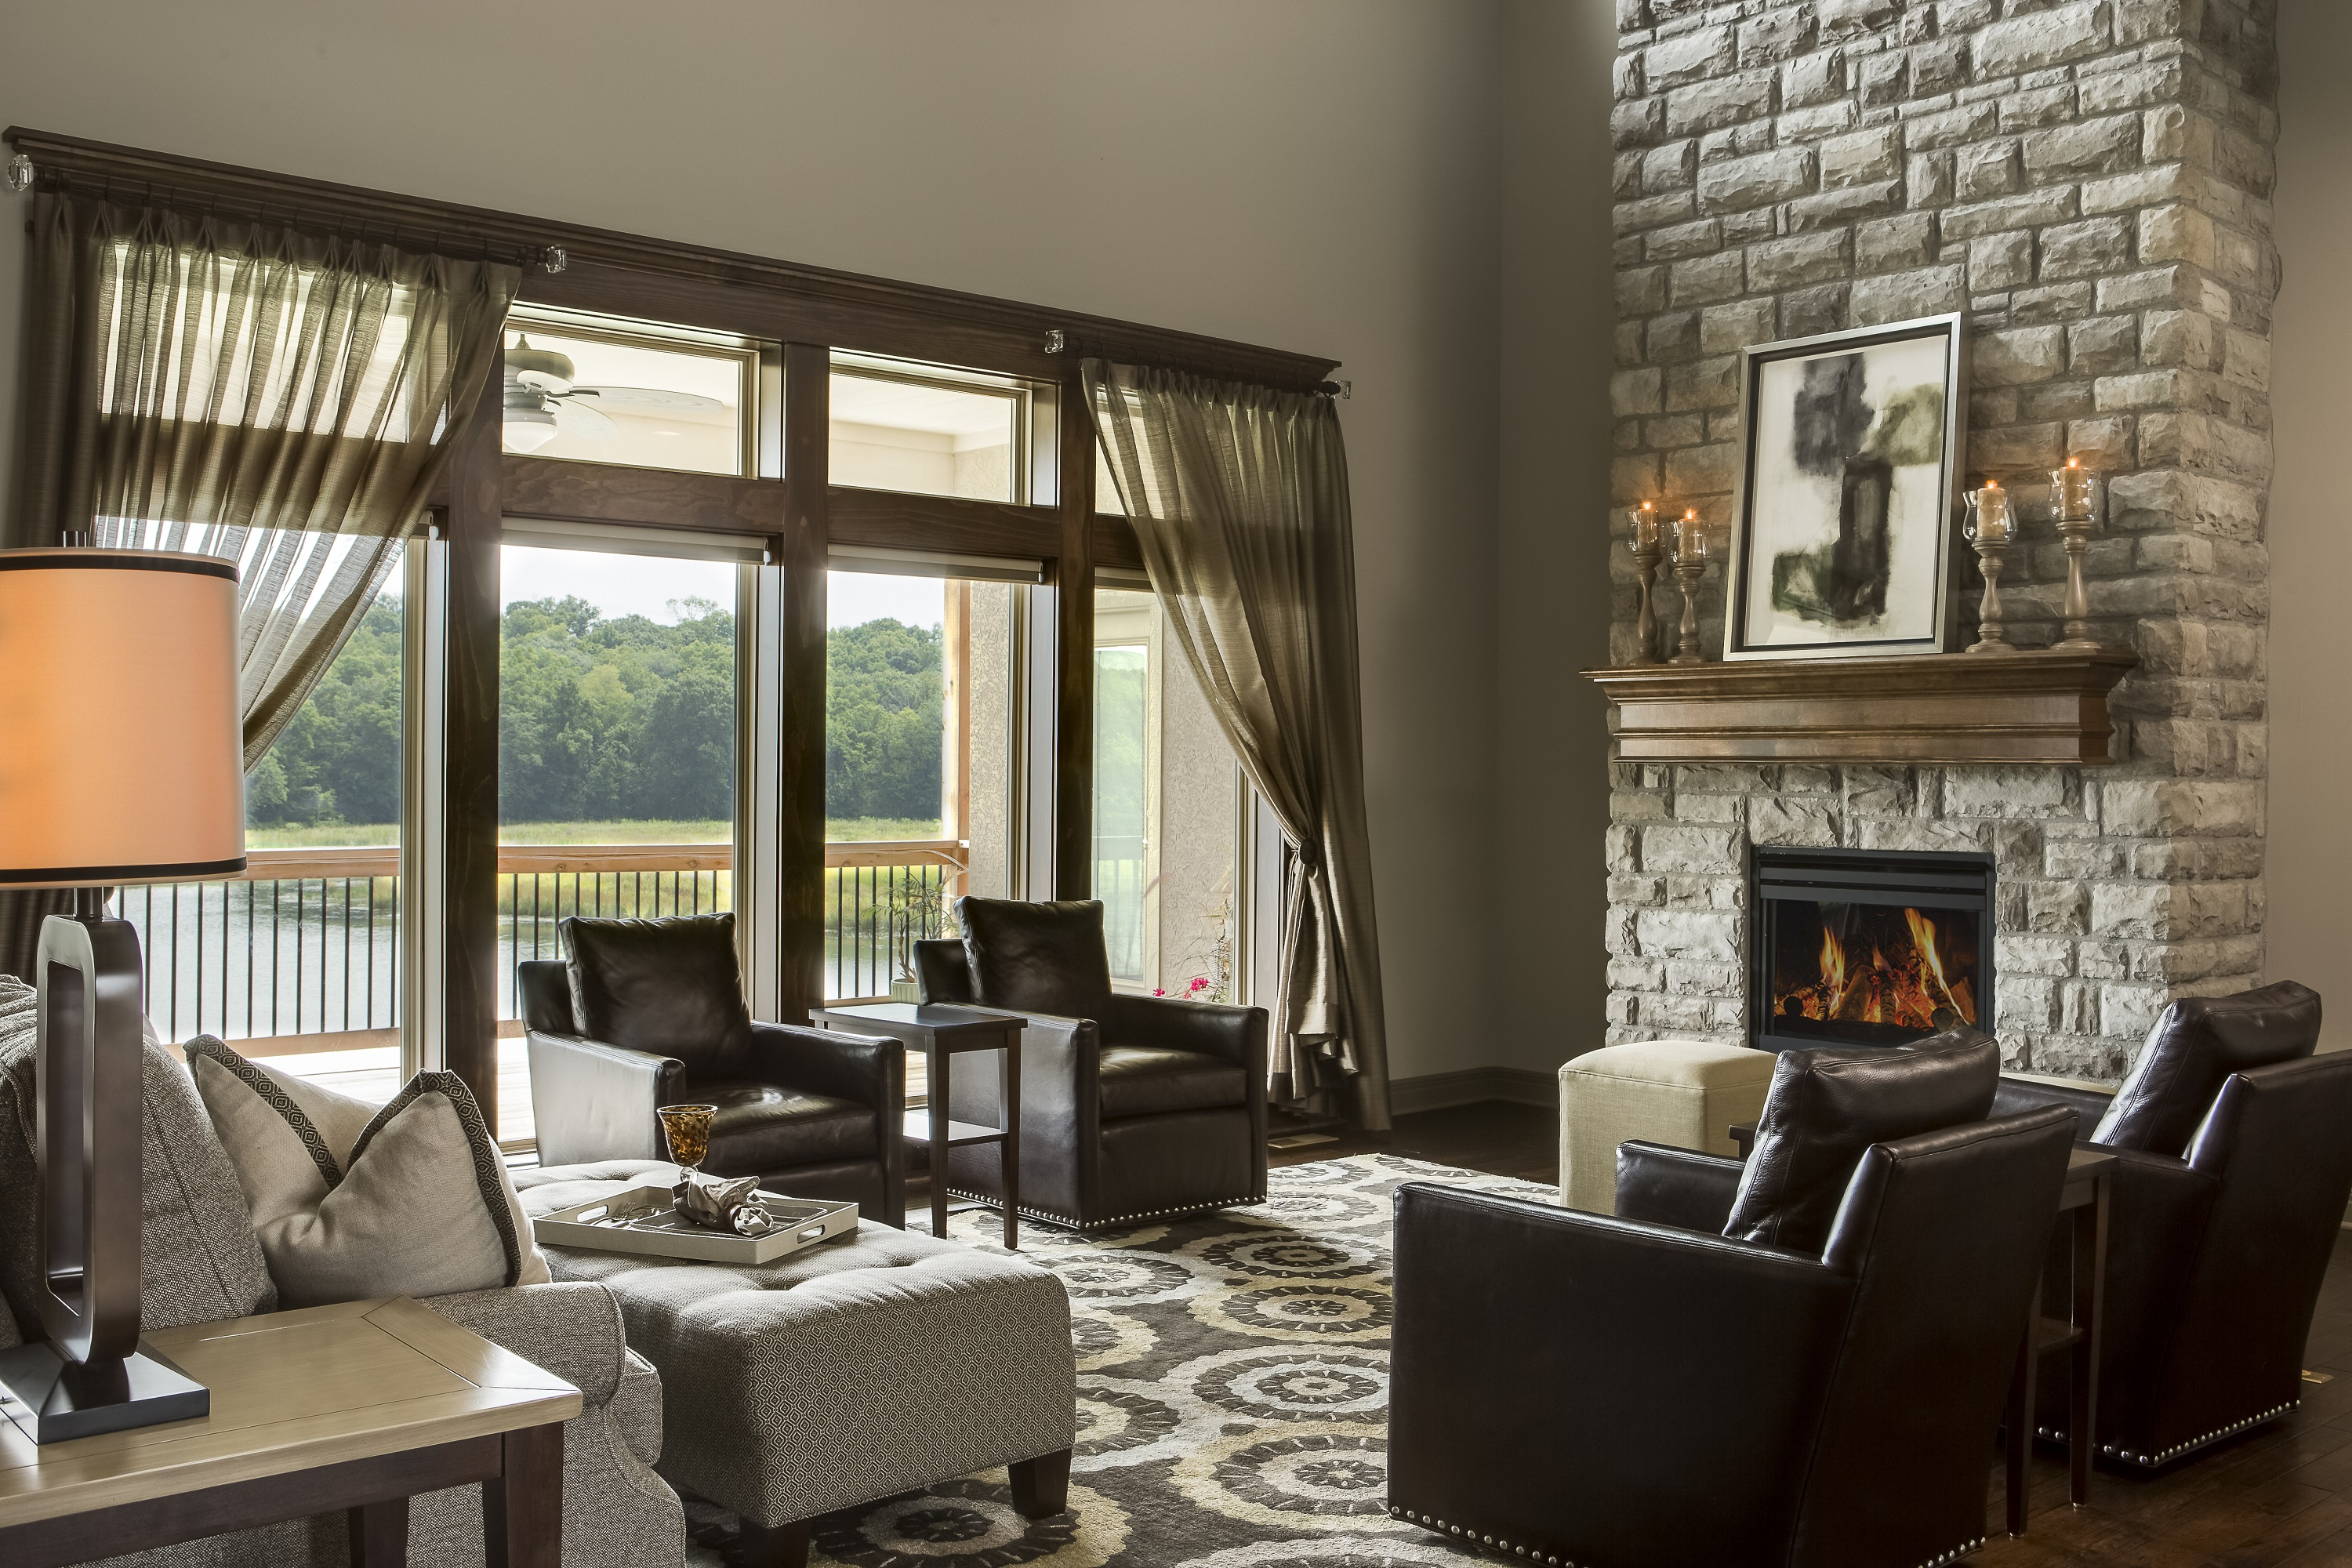 Stillwell Great Room Design Connection Inc Arlene Ladegaard Kansas City Interior Designer